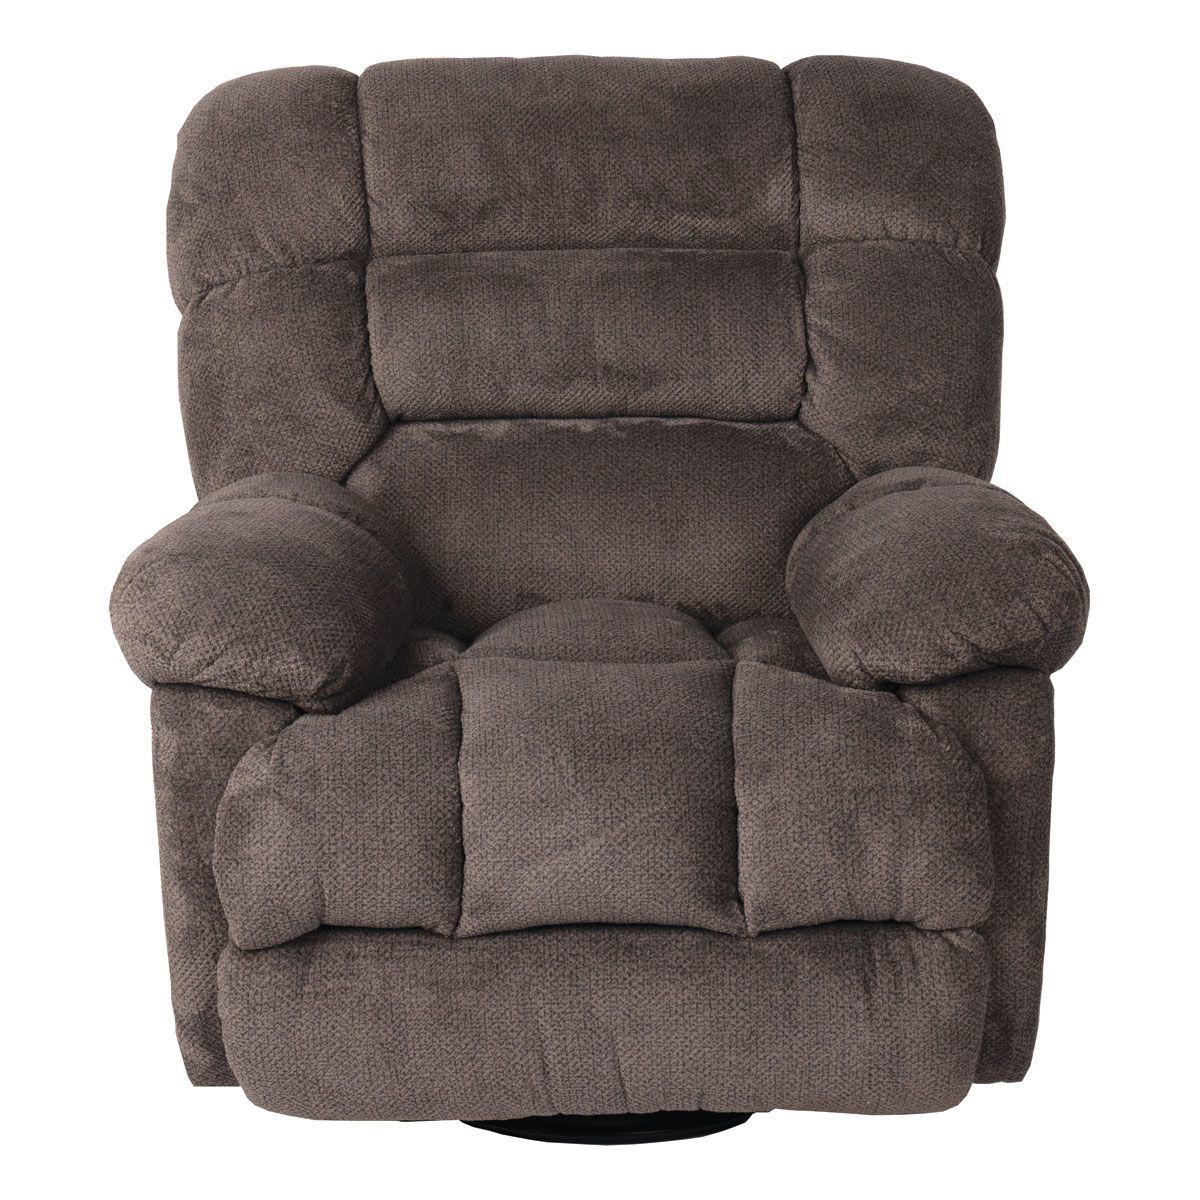 Picture of DOYLE SWIVEL GLIDER RECLINERS